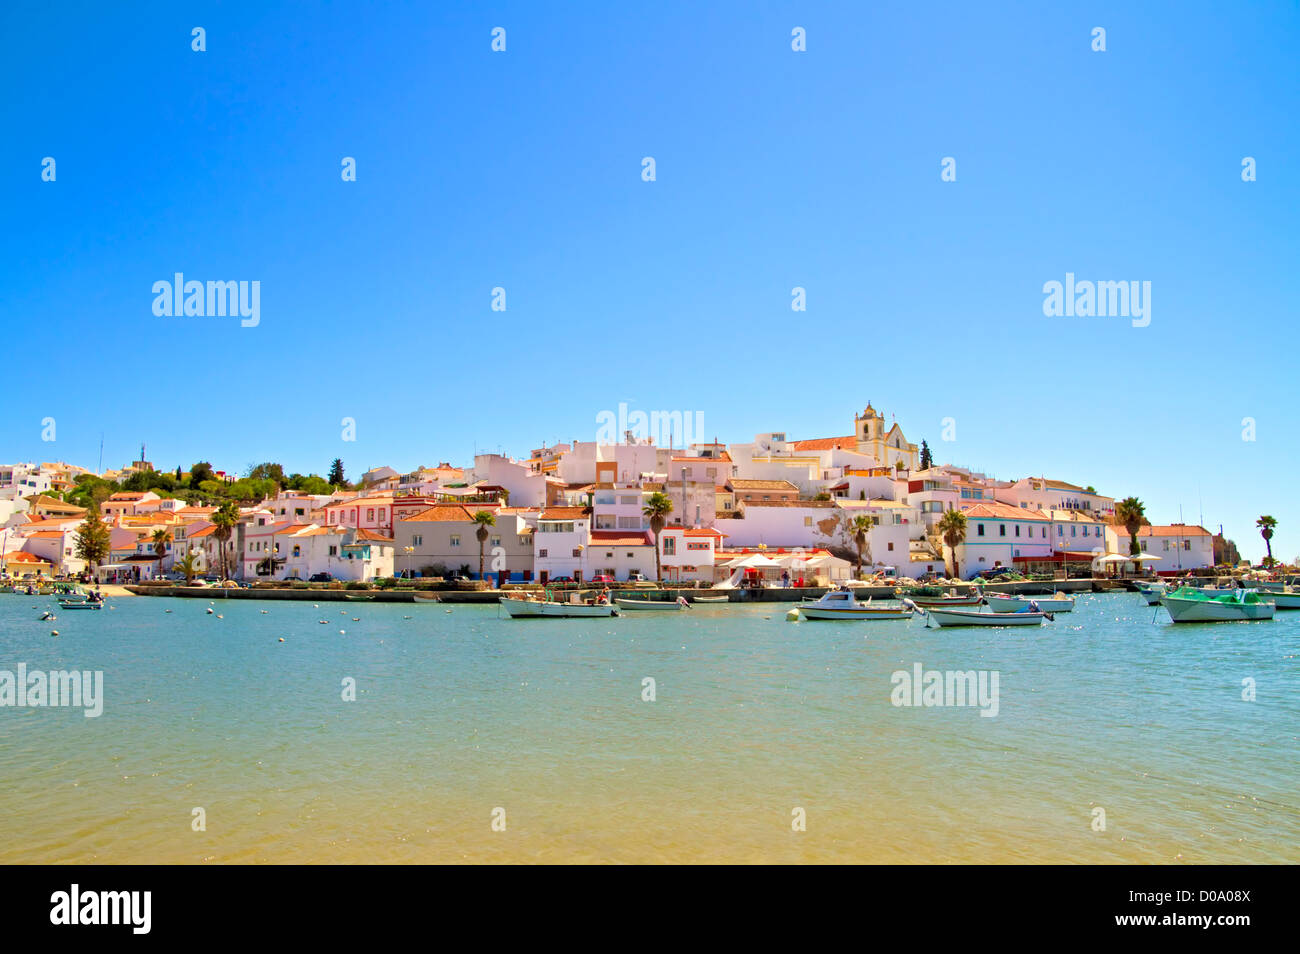 The village Ferragudo in the Algarve Portugal - Stock Image